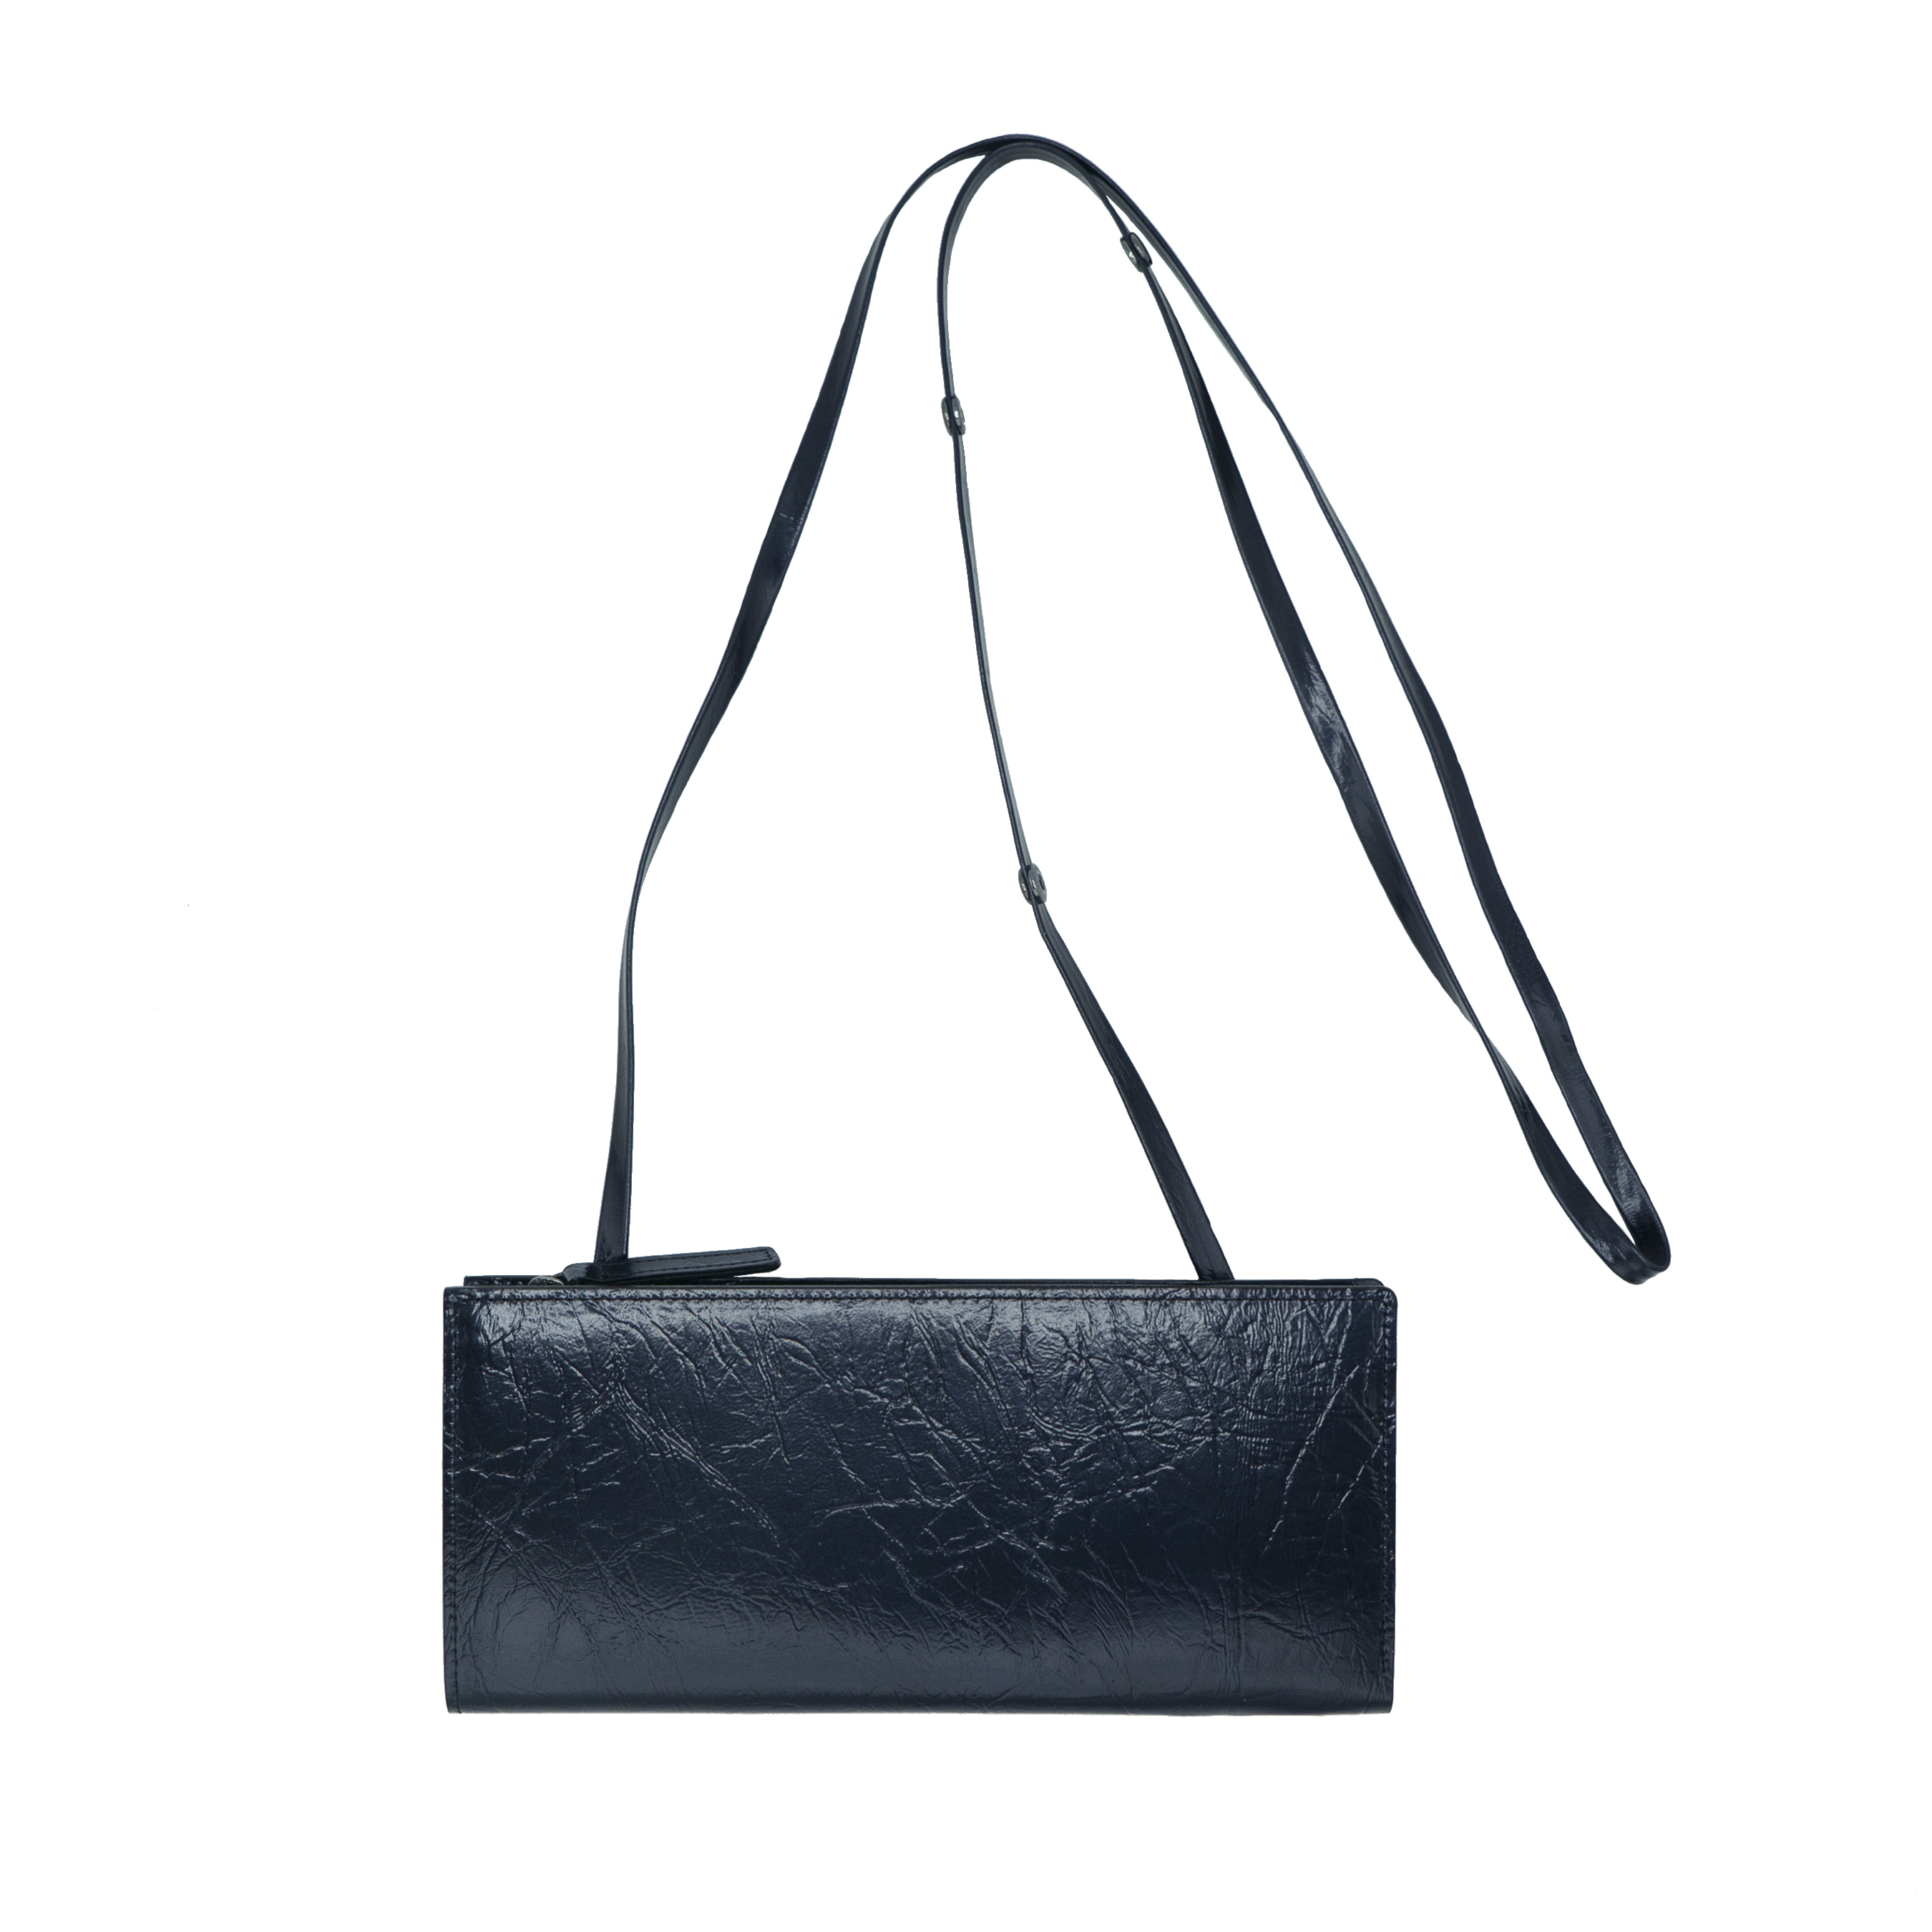 《財布ポーチS》TIN BREATH Travel purse Midnight black